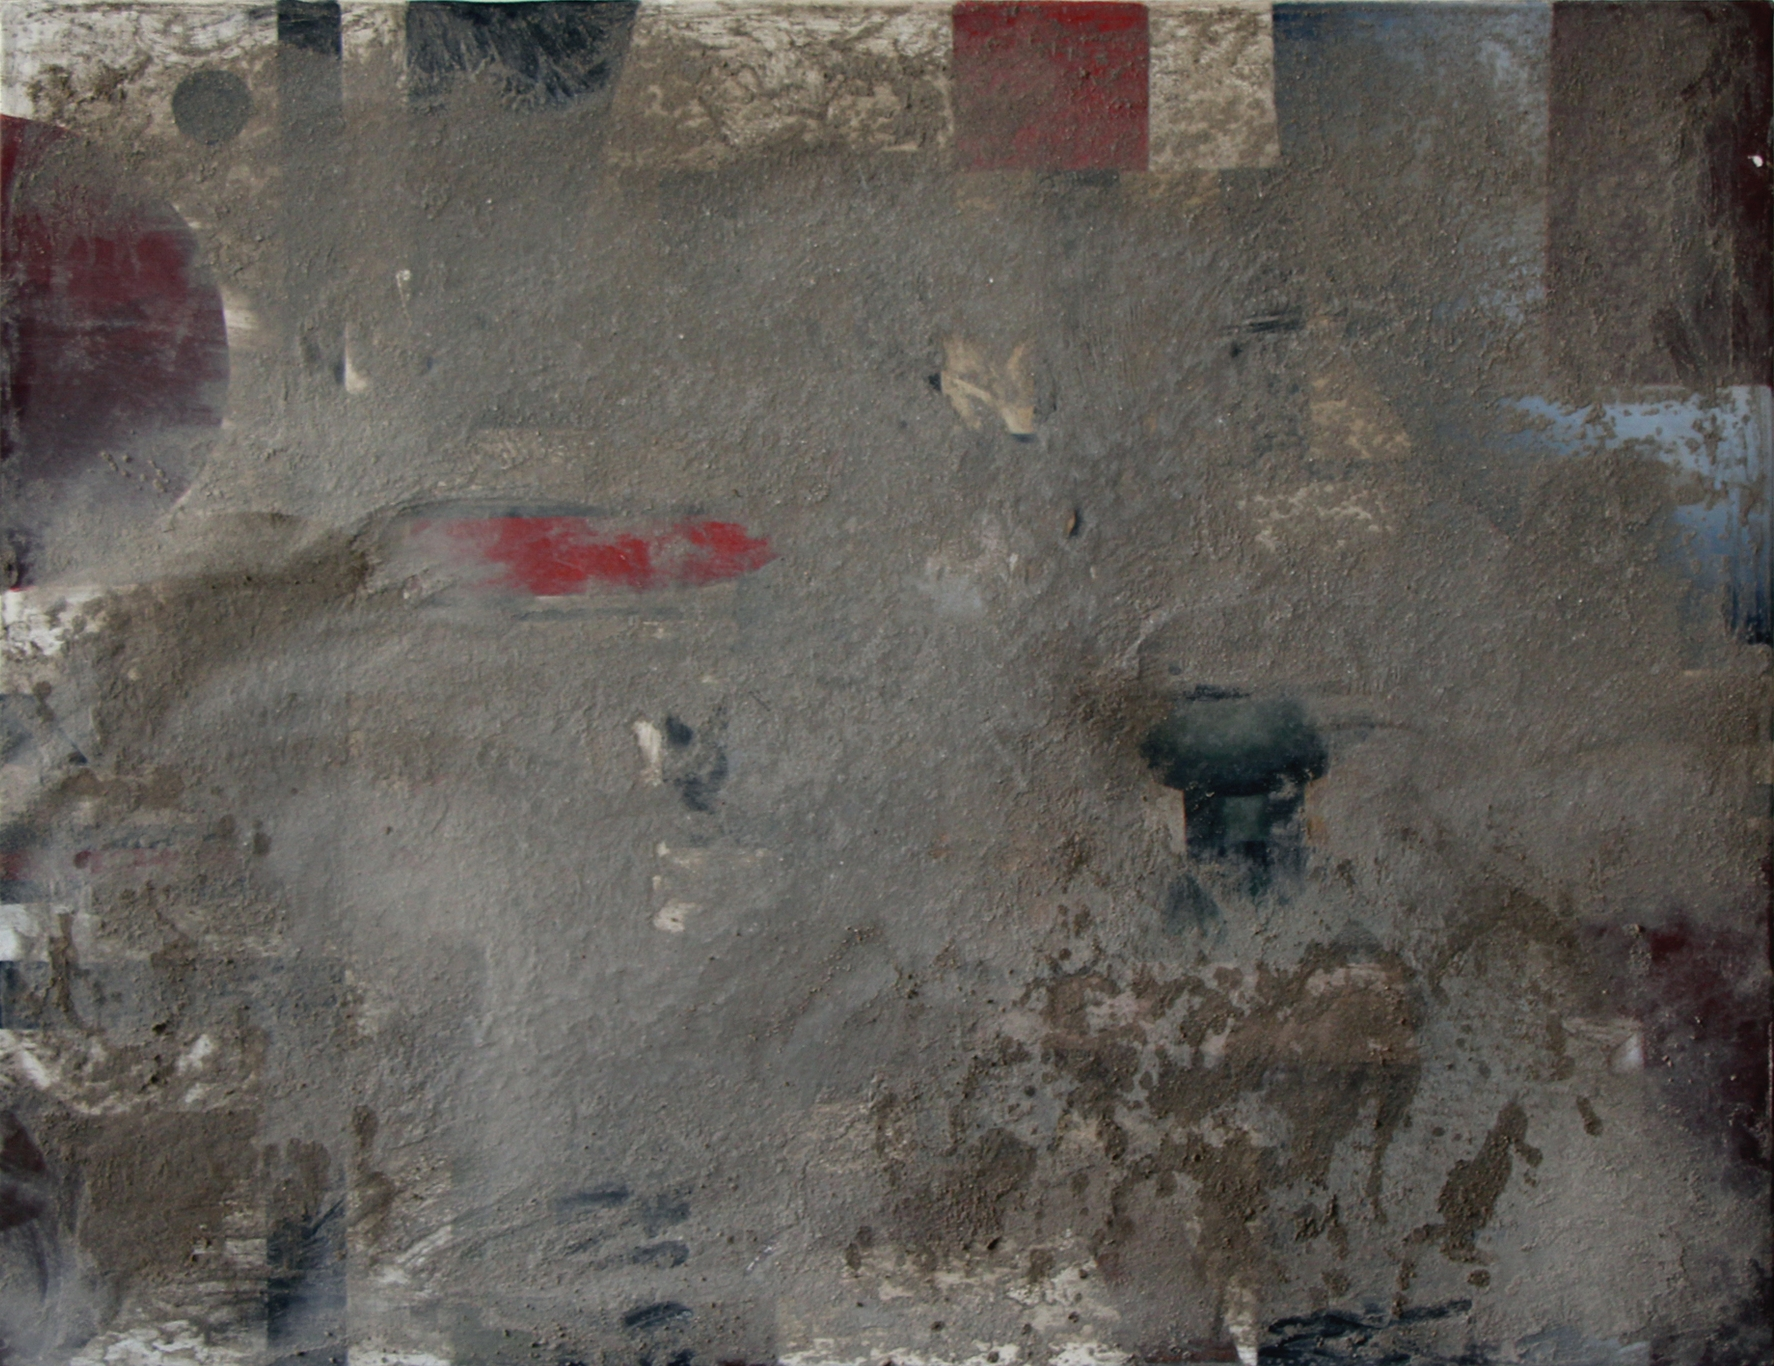 Pablo Rasgado  Pissed. After. Nature Morte. , 2014 dust and urine on acrylic on canvas. 50 x 65 cm